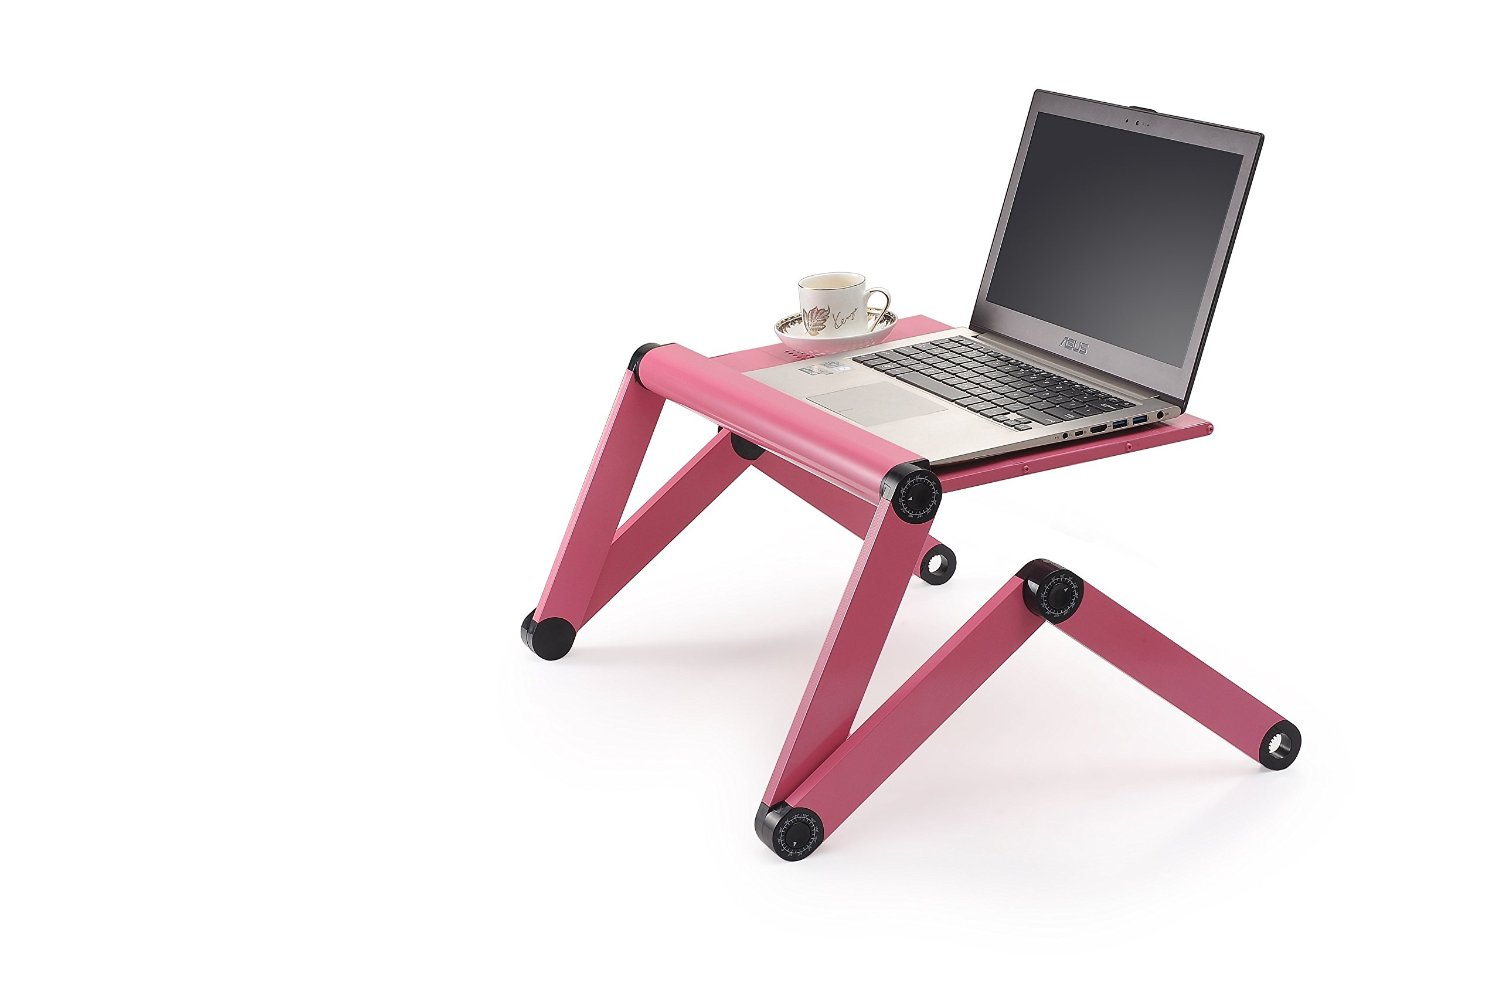 Adjustable Vented Laptop Table Laptop Computer Desk Portable Bed Tray Book Stand Multifuctional & Ergonomics Design Dual Layer Tabletop (Red)